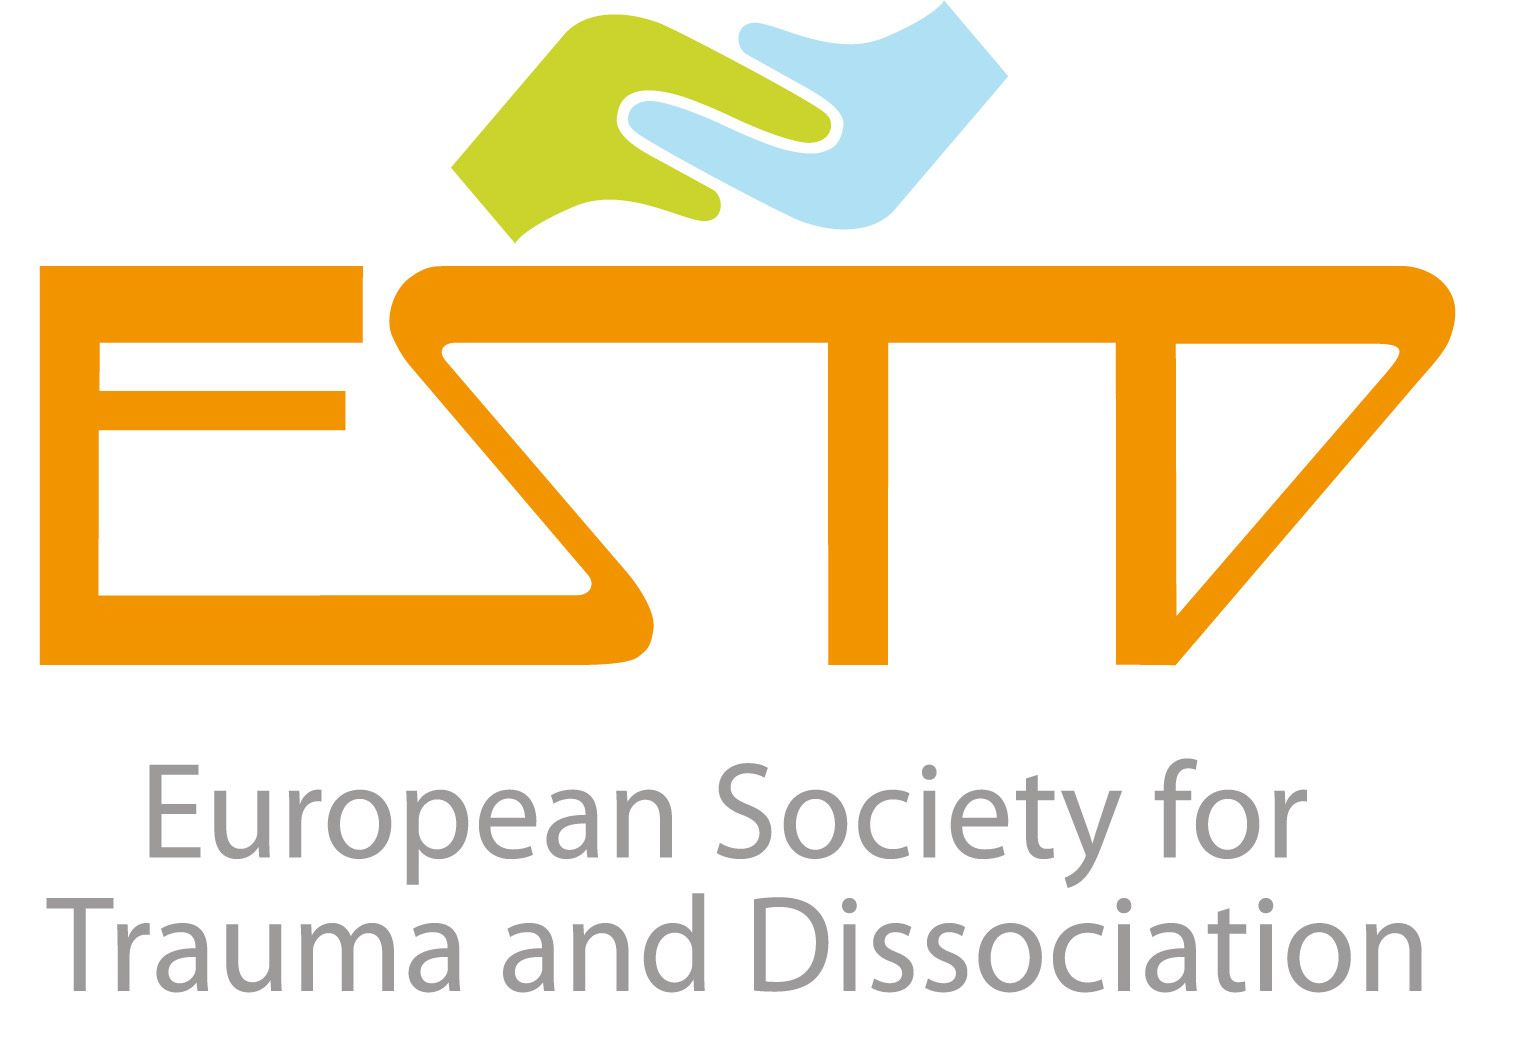 logo for European Society for Trauma and Dissociation